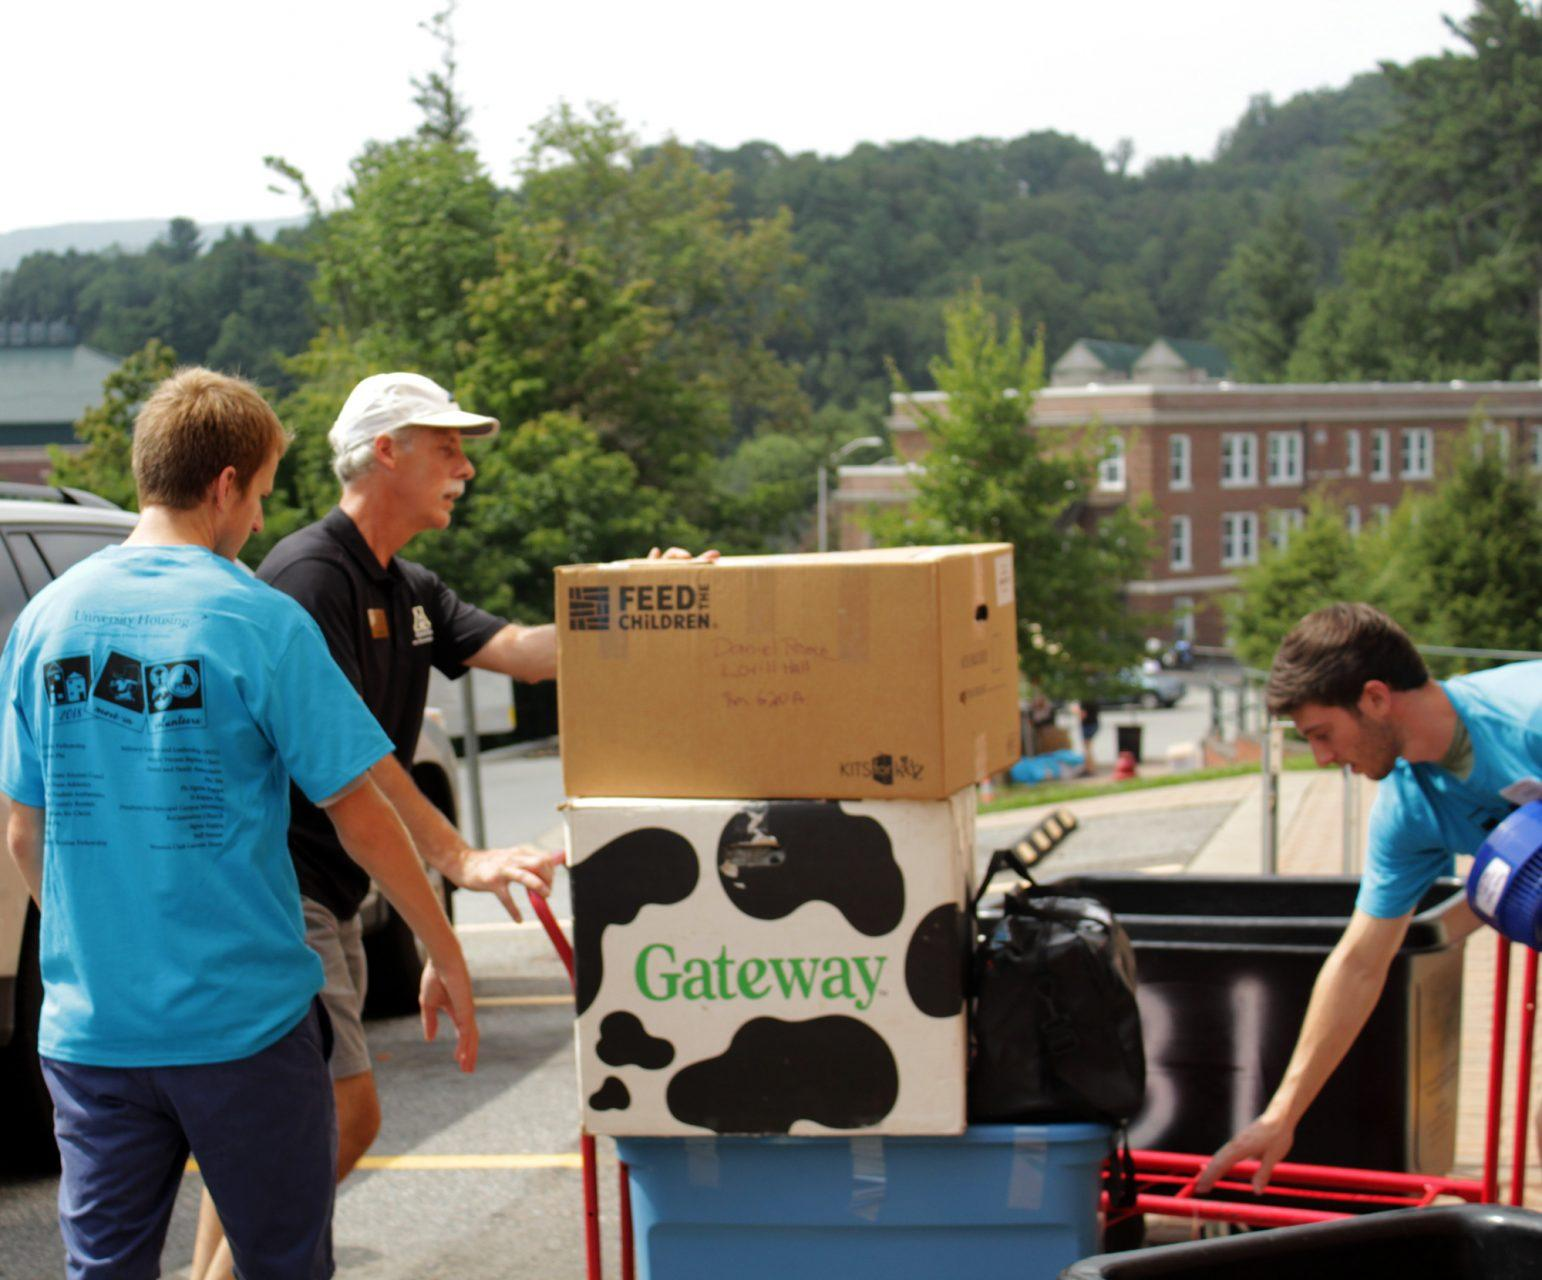 Parent+Association+member+Don+Grosse+helps+a+student+move+into+Lovill+Hall.+Move-in+volunteers+welcomed+new+and+returning+students+to+their+residence+halls+on+Friday.+